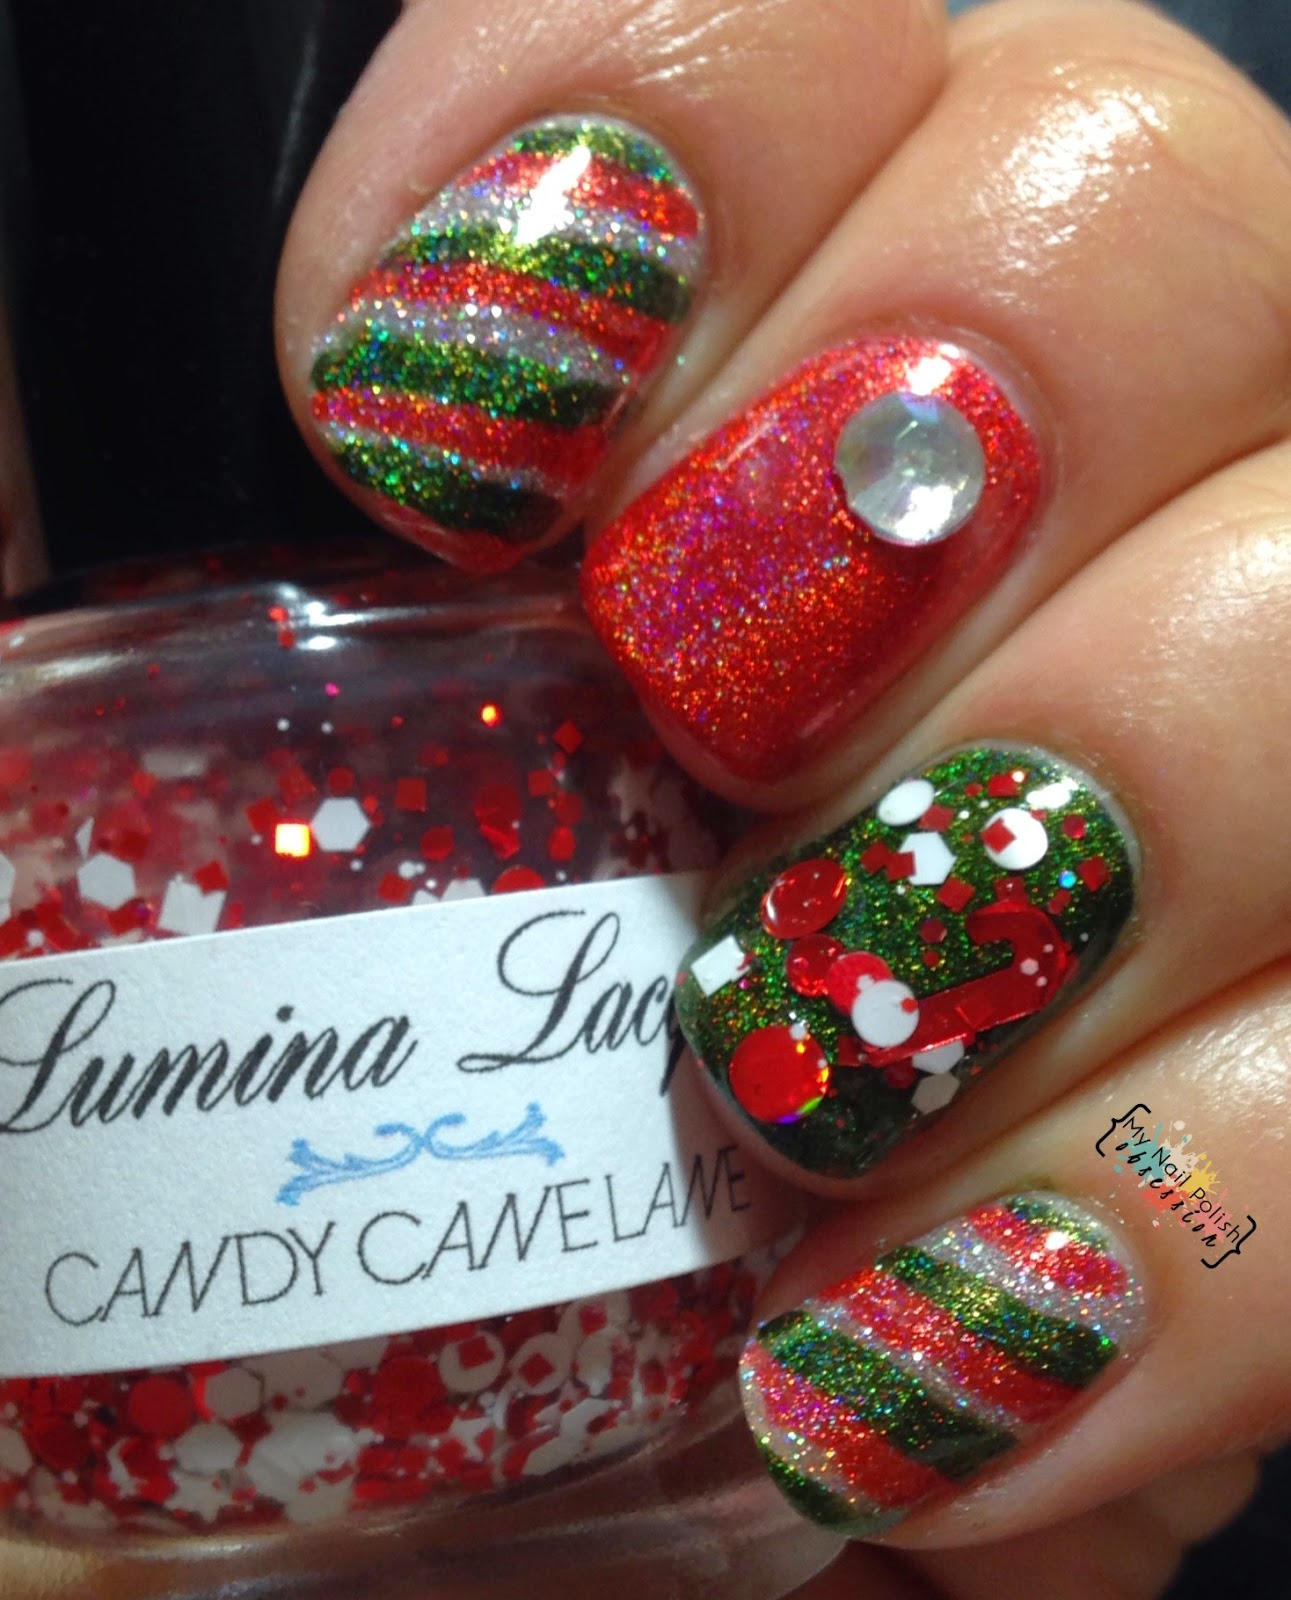 Smitten Polish The First Lobster, Lumina Lacquer Candy Cane Lane